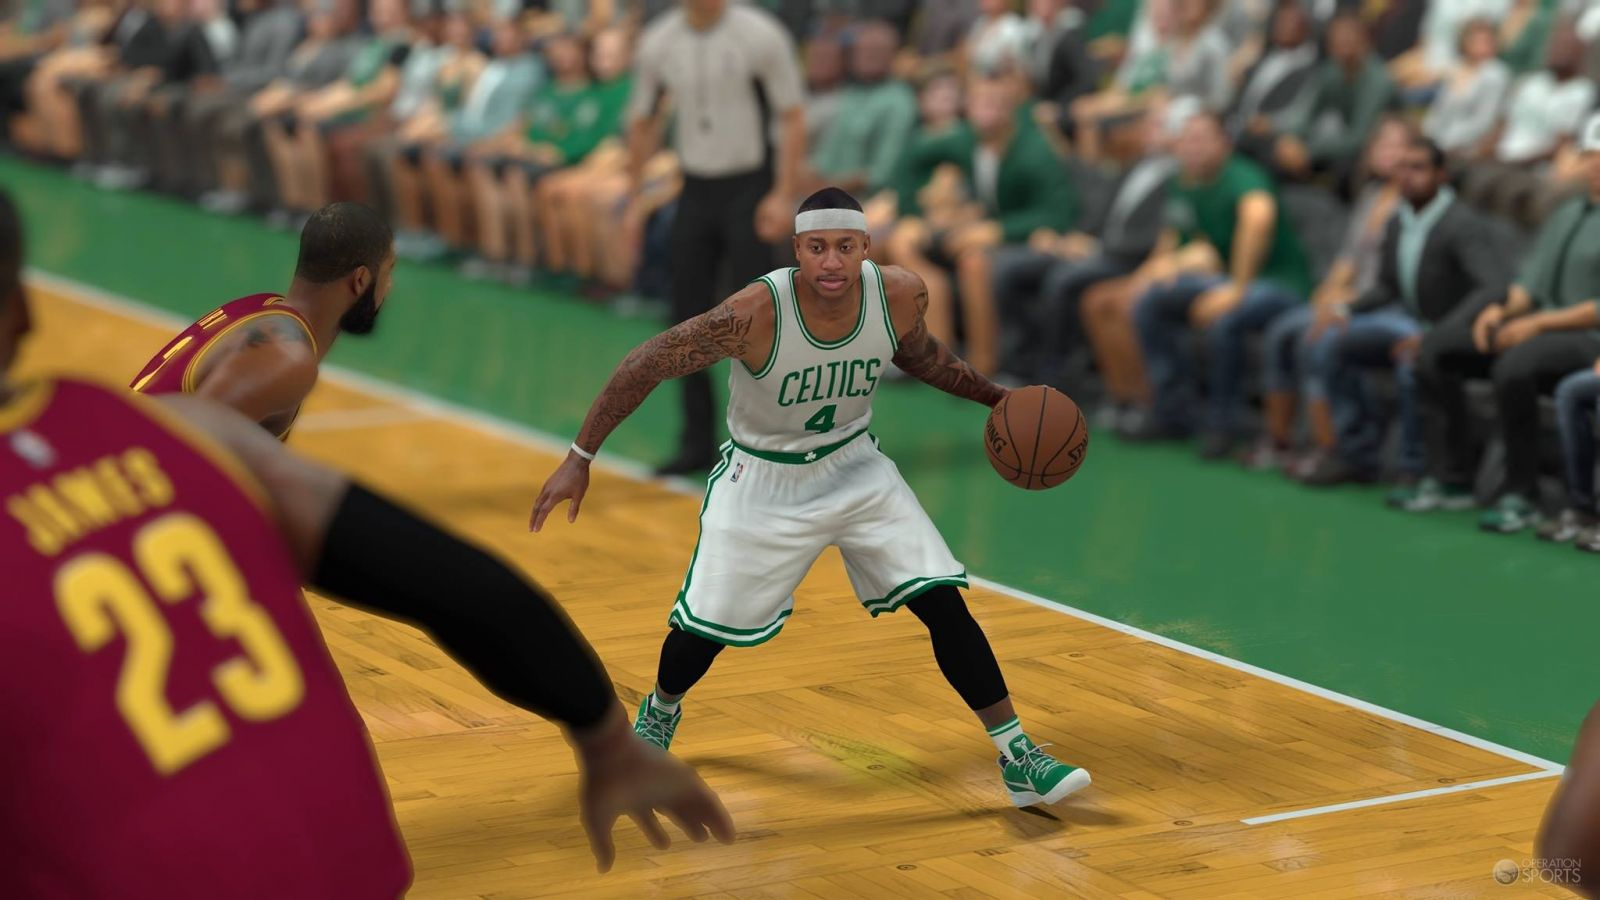 u4nba com | Special product news, Hot Game News, Guides, Videos and